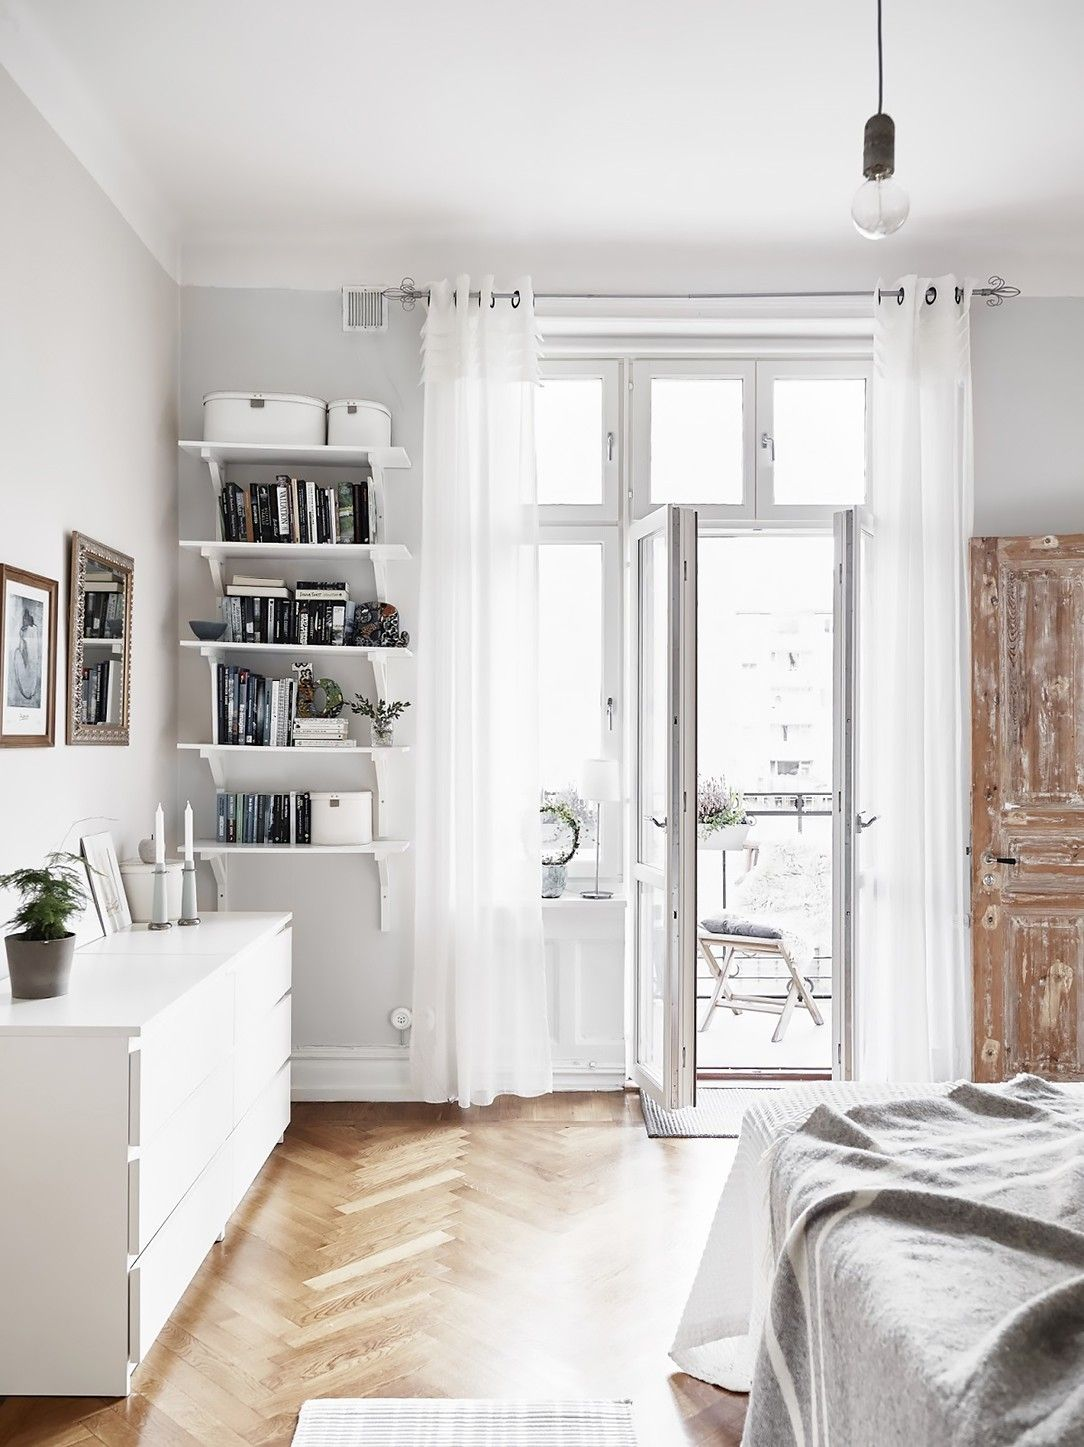 8 IKEA Bedrooms That Look Chic Home bedroom, Home decor